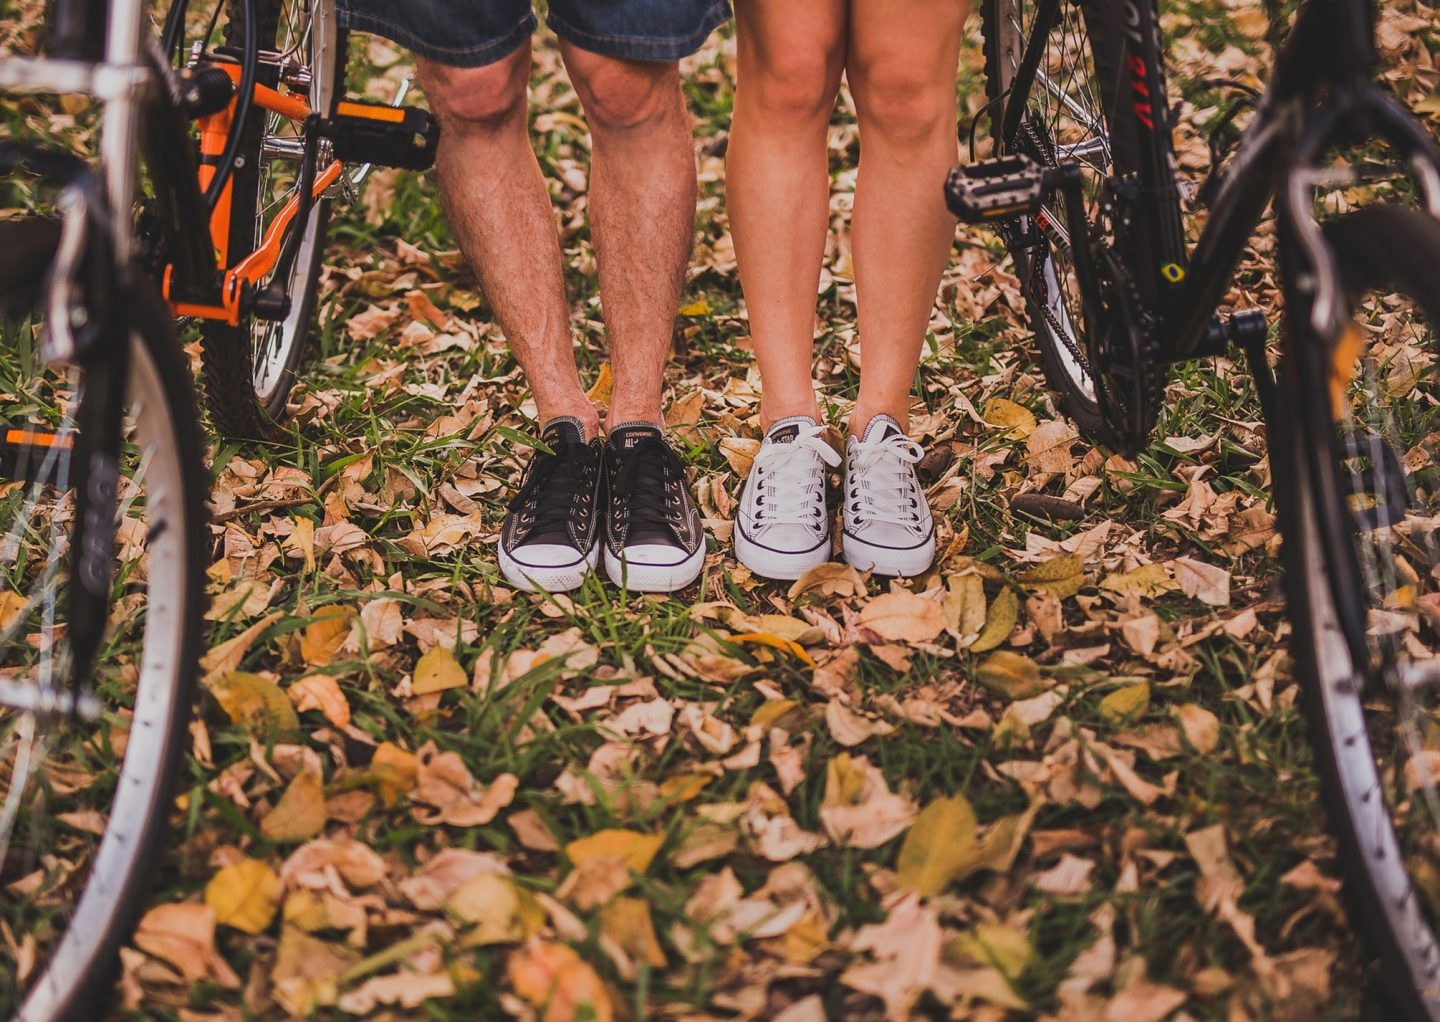 Two people with bicycles stood on fallen leaves